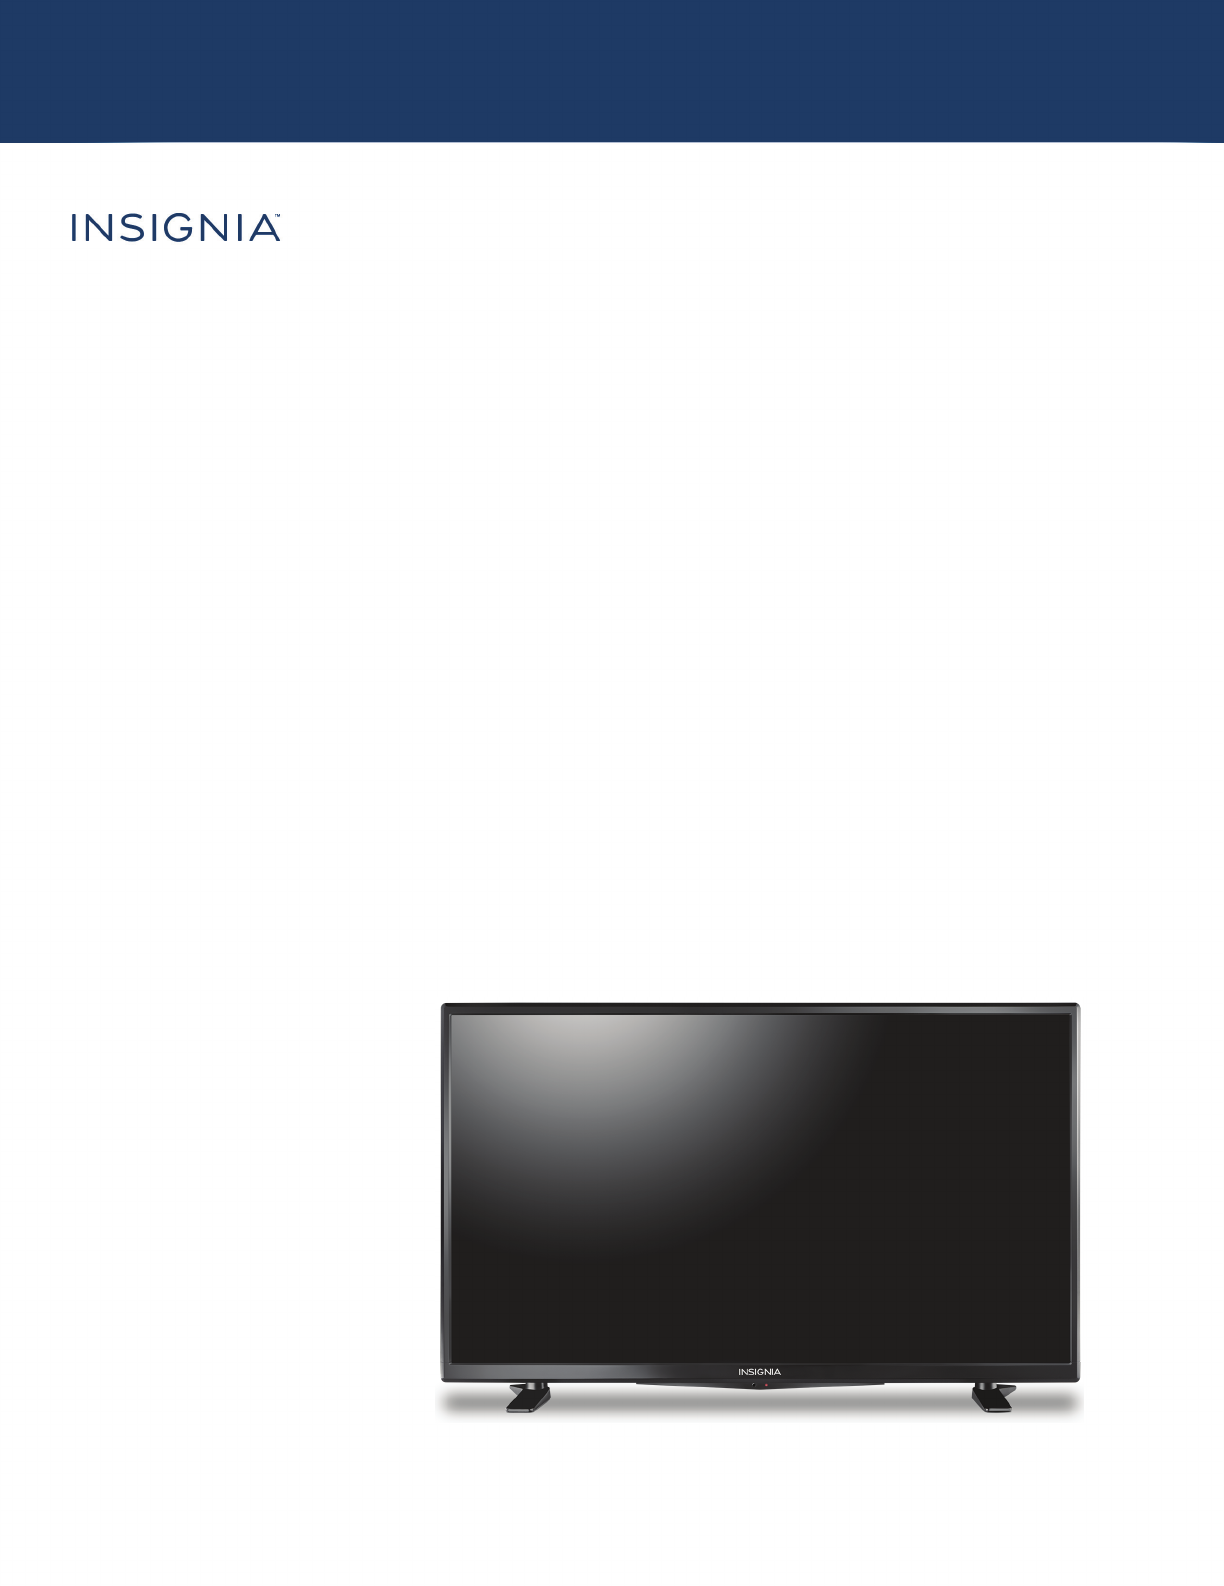 insignia 46 led tv manual free owners manual u2022 rh wordworksbysea com insignia tv owners manual ns42l780a12 insignia tv owners manual ns42l780a12